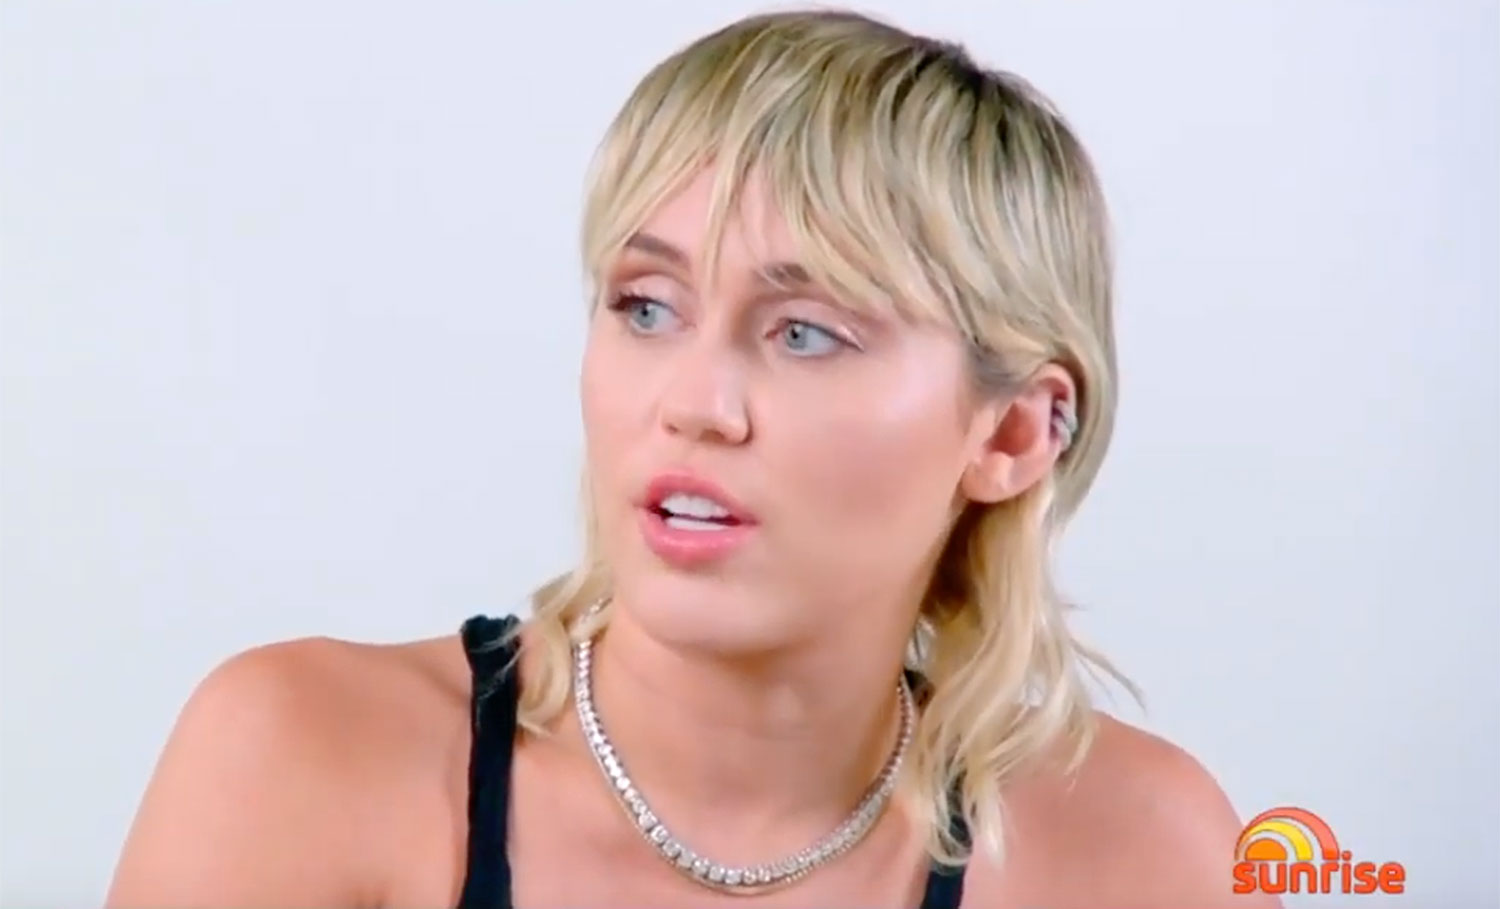 Miley Cyrus Sympathizes with Australian Wildfire Victims Before Her Headlining Benefit Concert